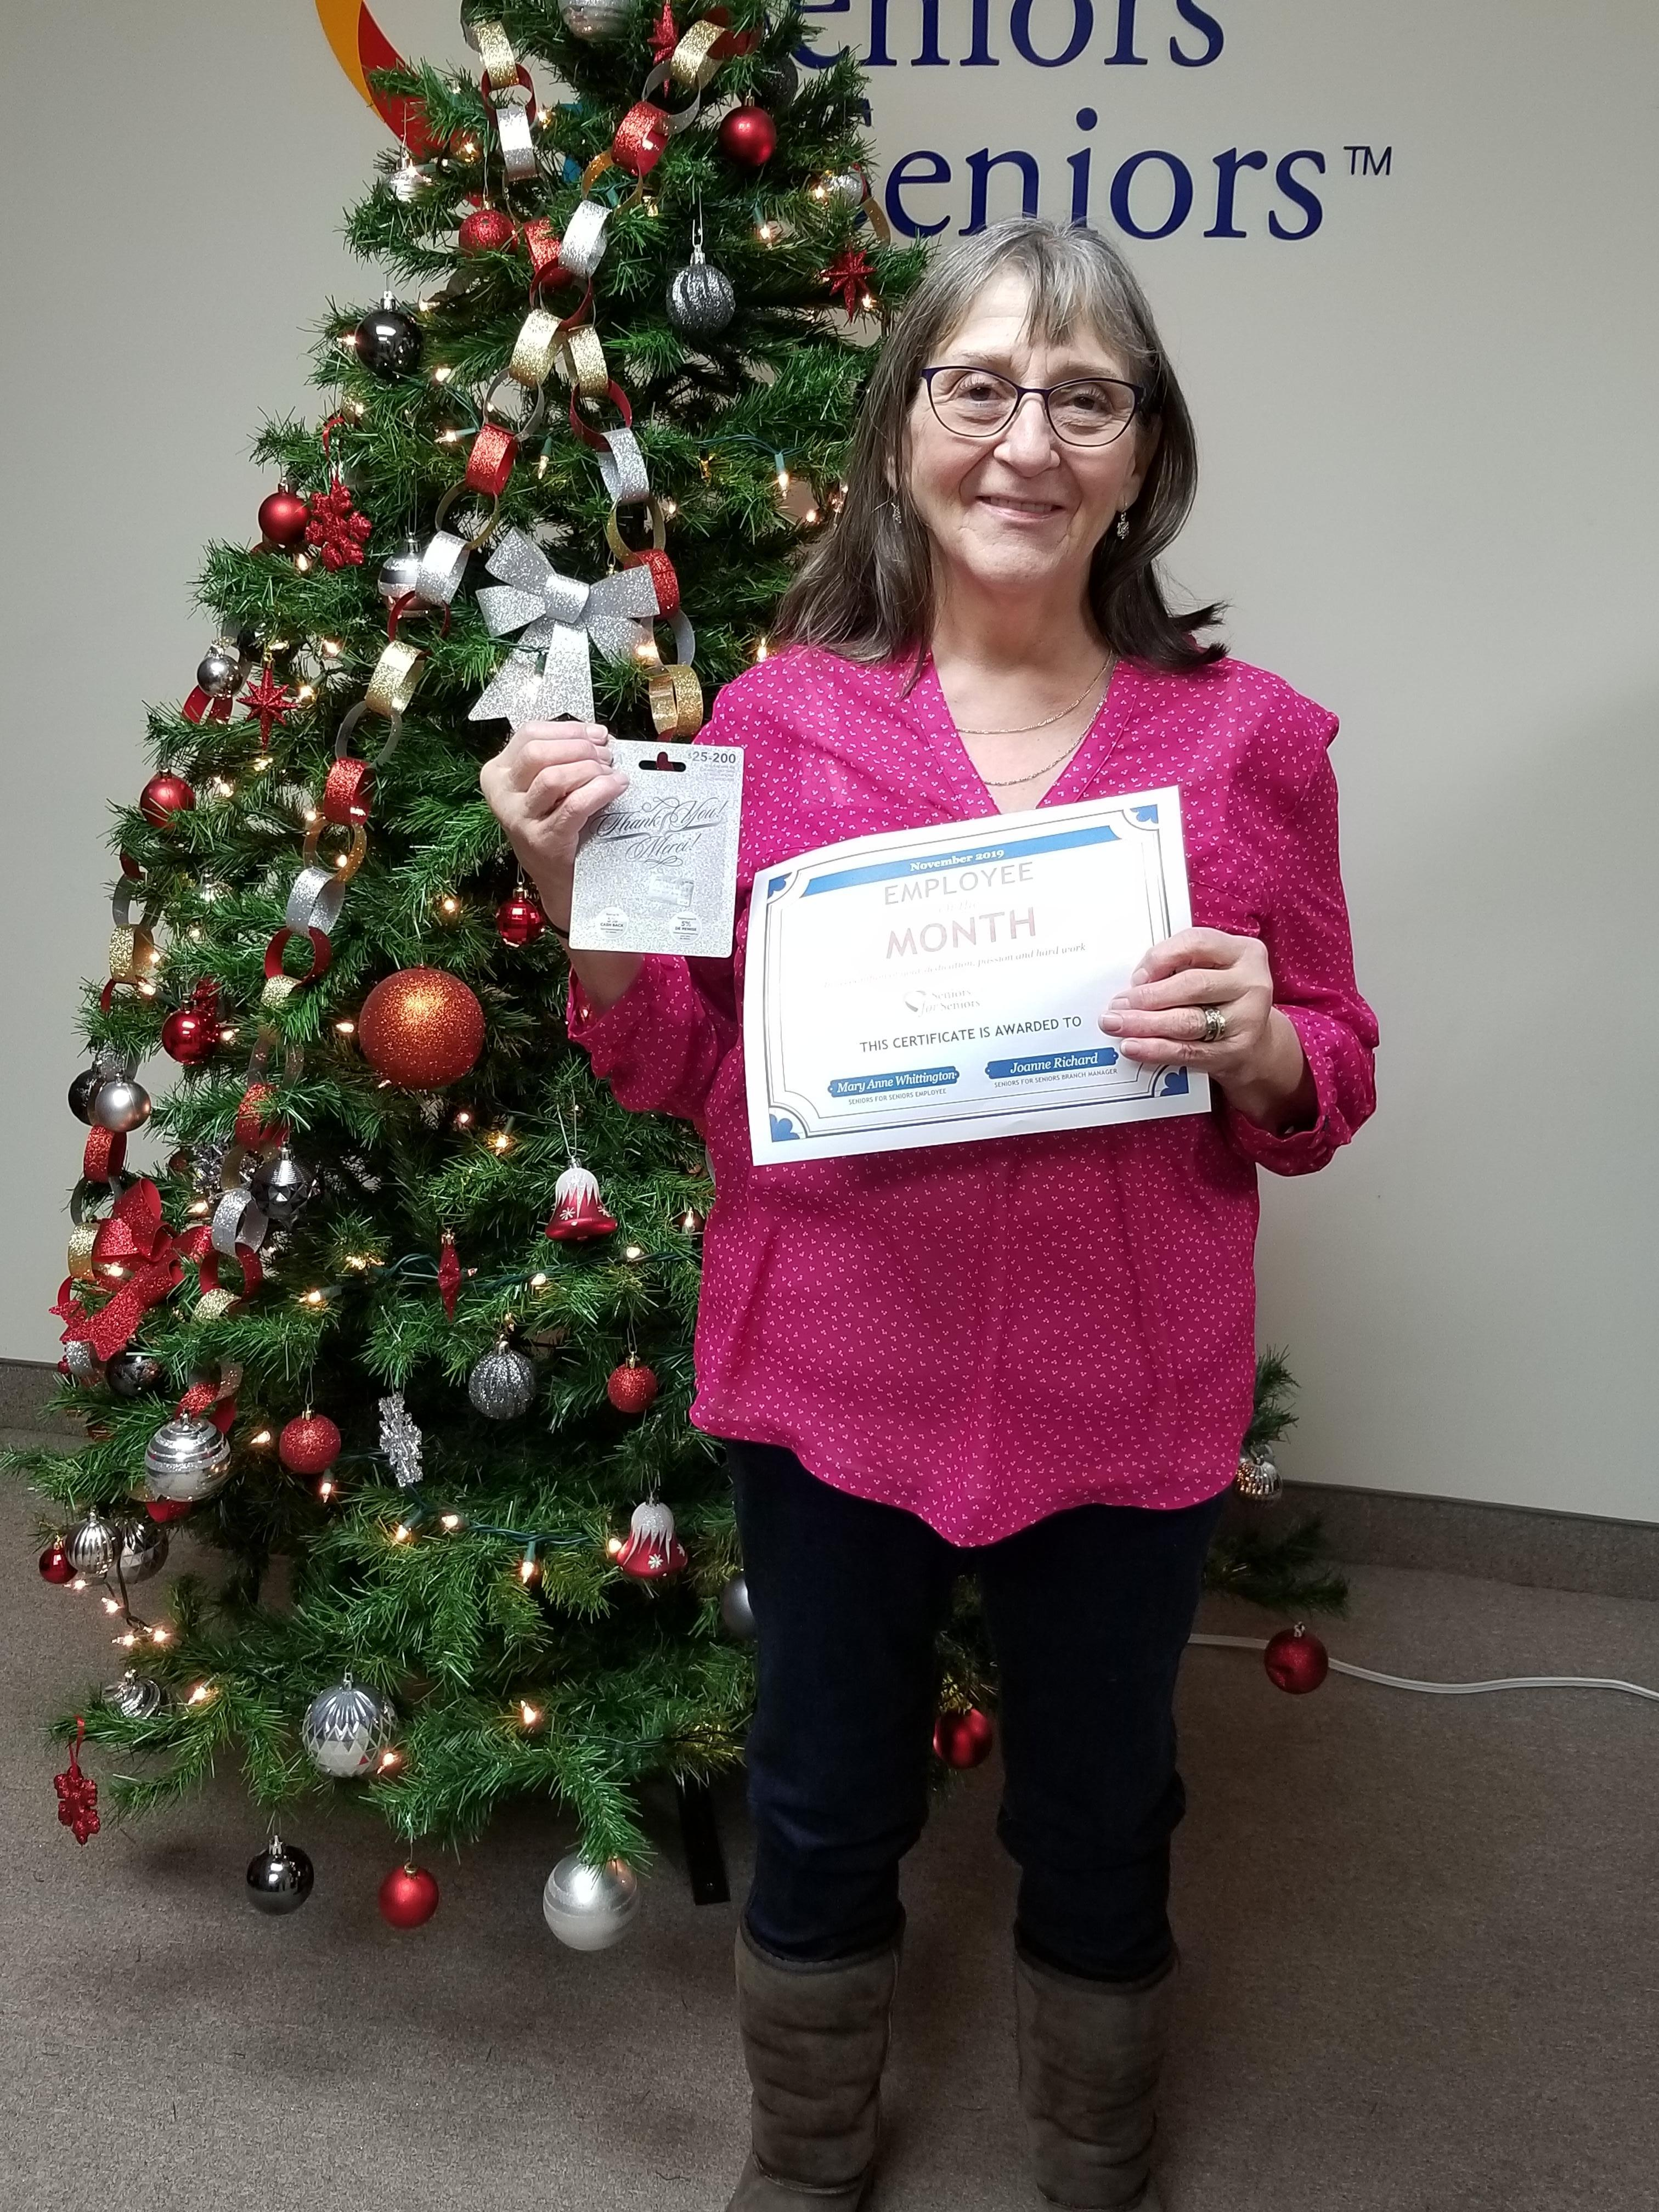 Image: Mary Anne is our November Employee of the Month!